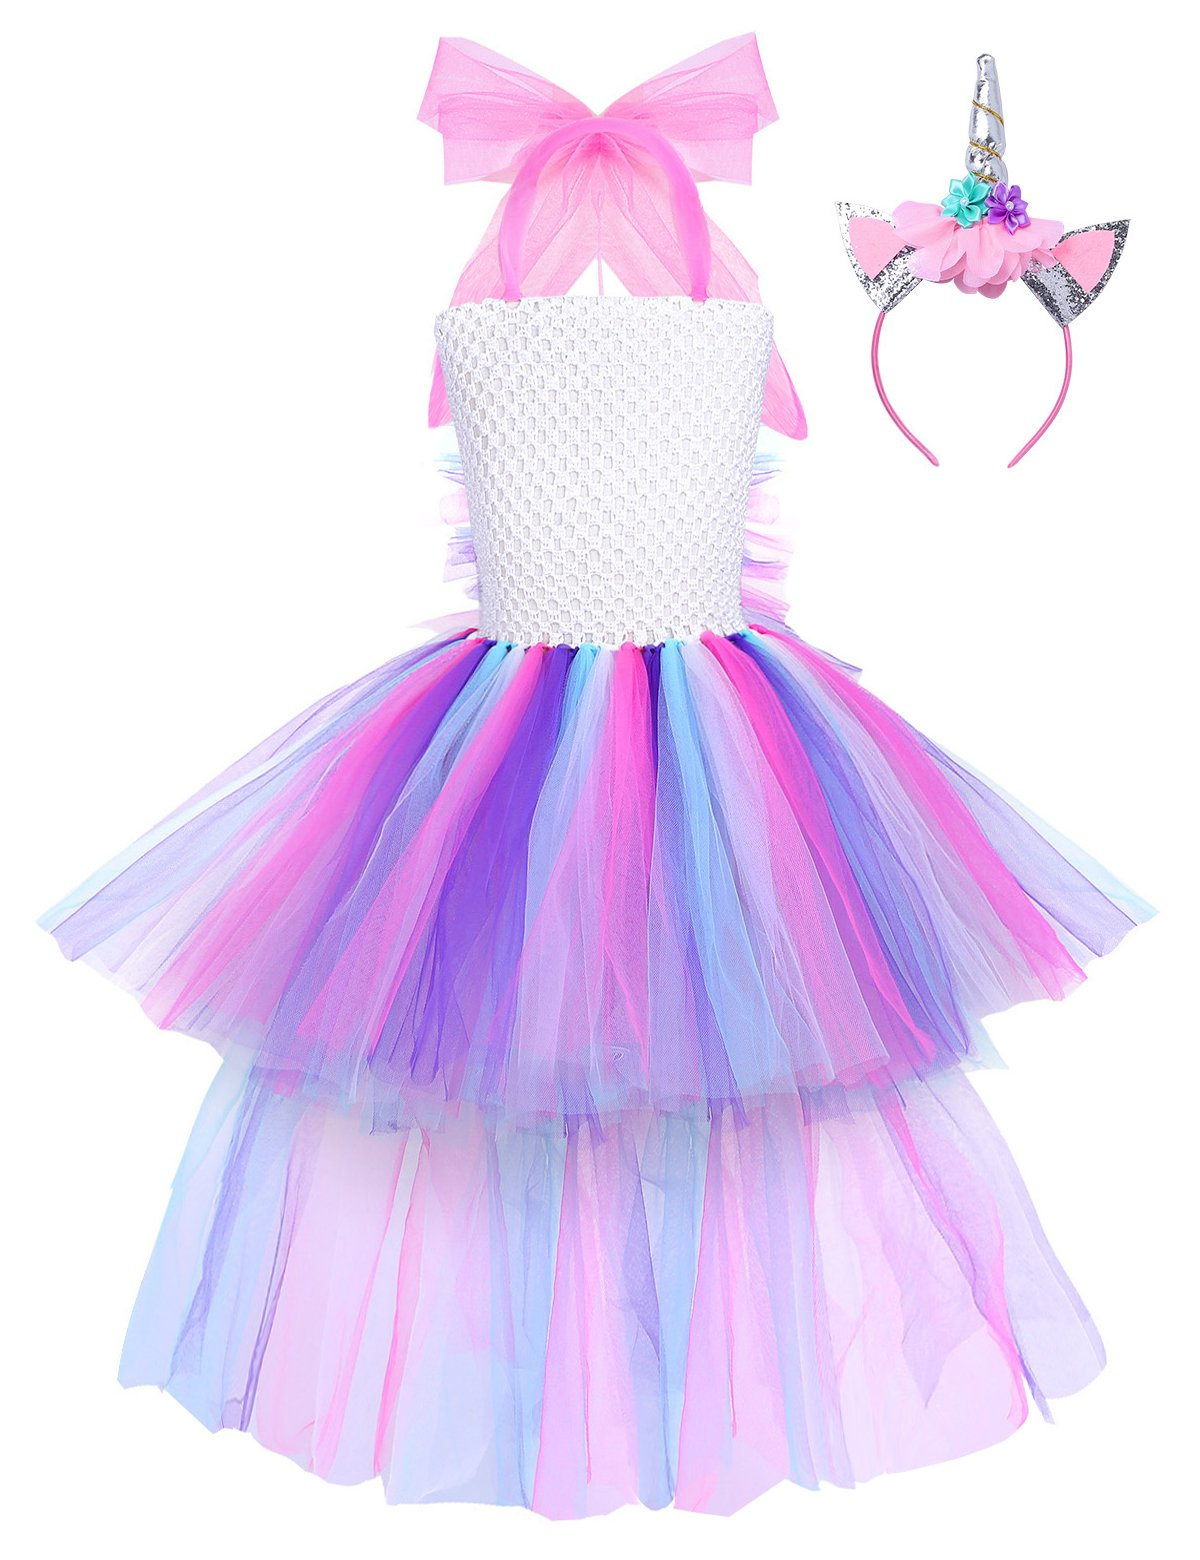 YiZYiF Girls Inspired Mythical Outfit Birthday Tutu Party Dress with Horn Hair Hoop Ballet Costumes Colorful with Train 5-6 by YiZYiF (Image #1)